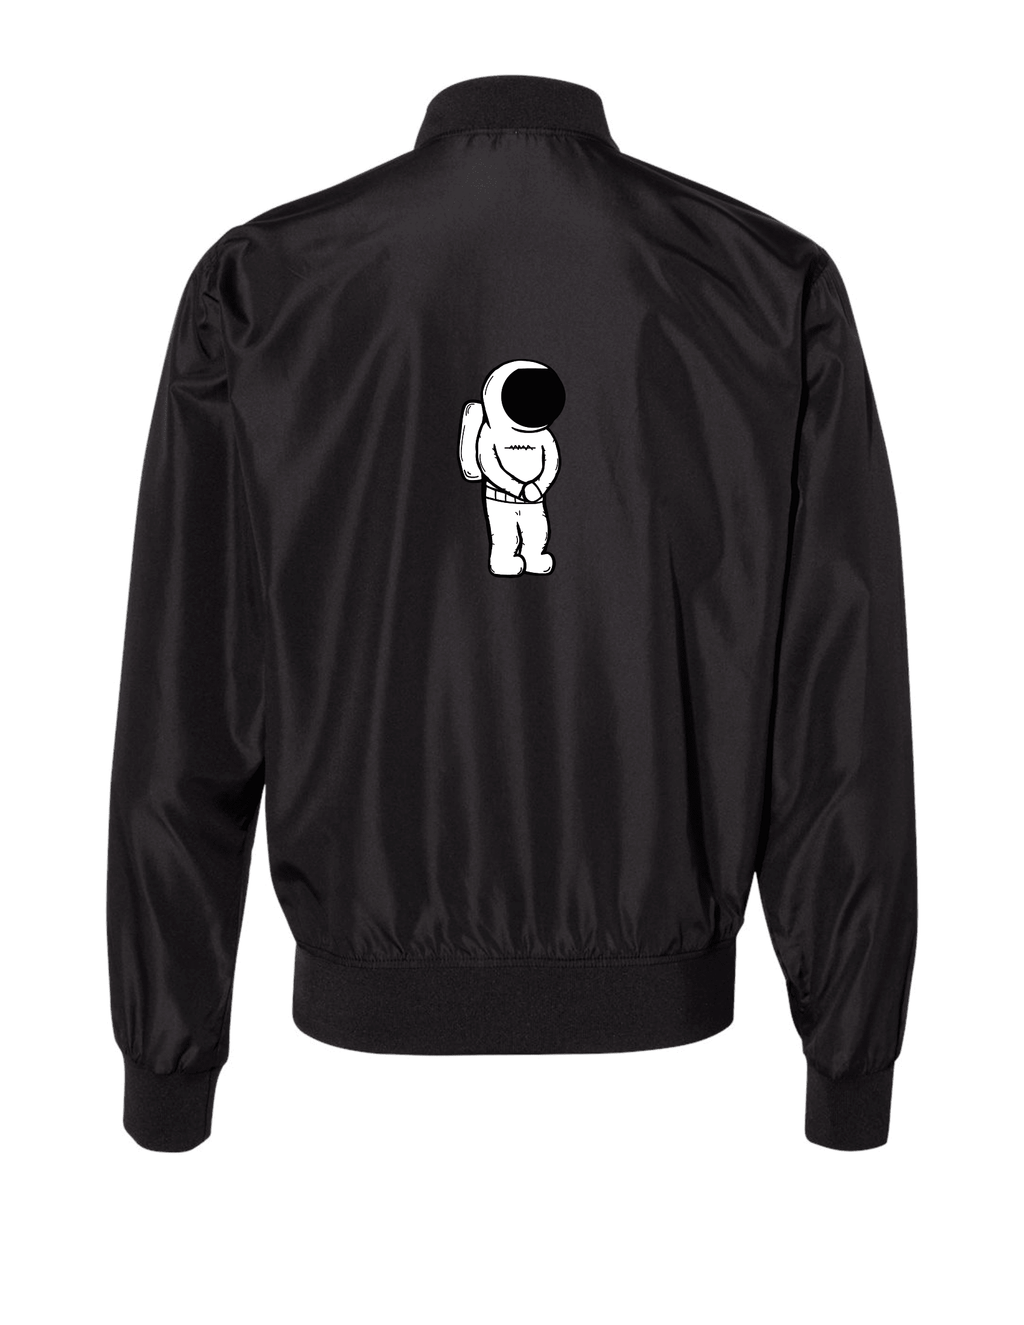 Simple Space Cadet Bomber Jacket - Twwisted